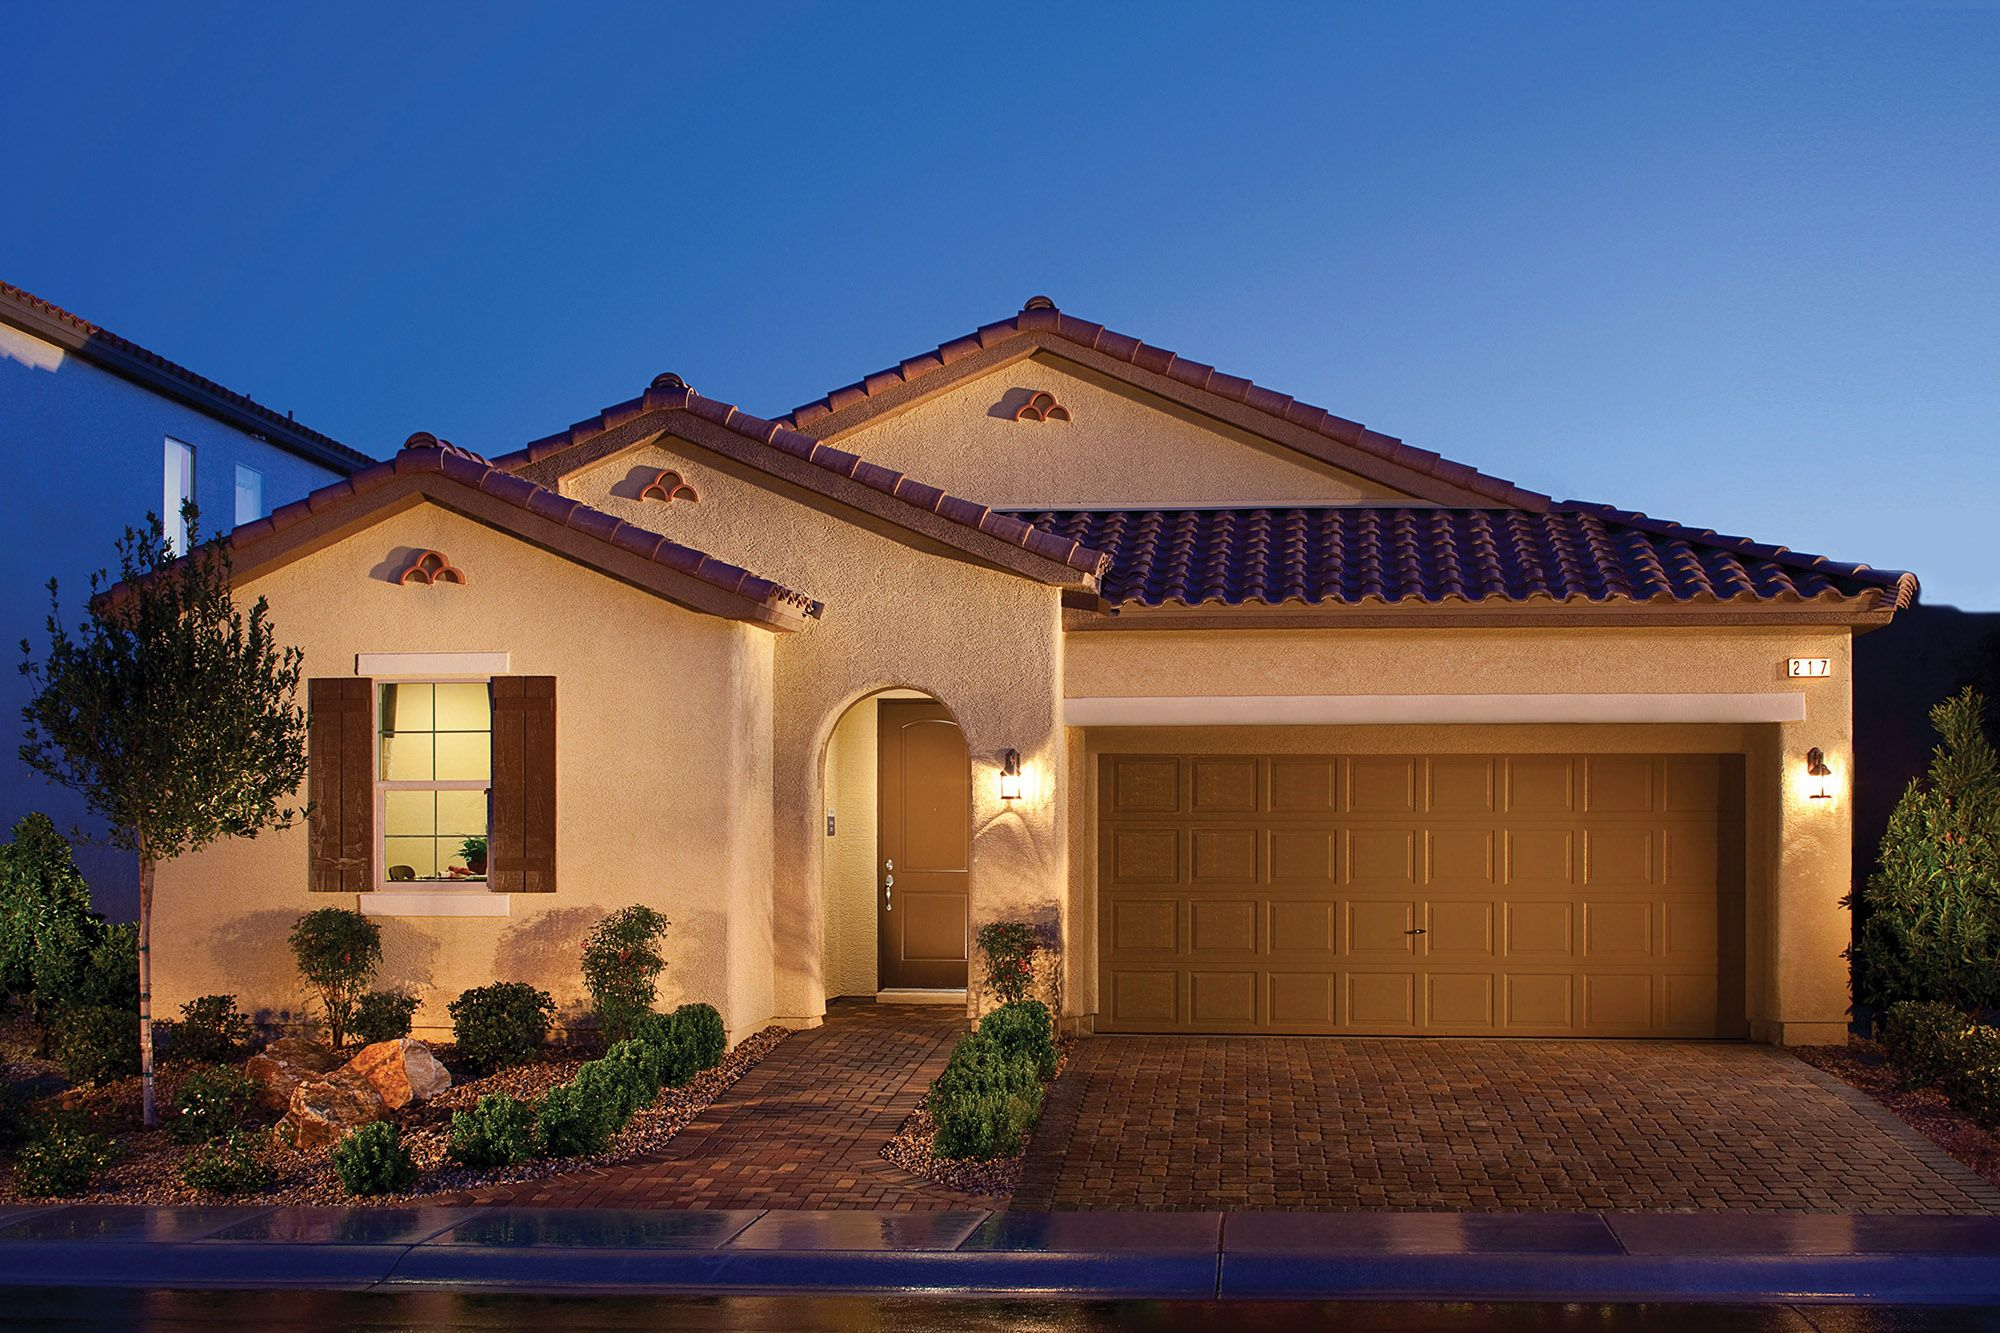 Tuscany residential village new homes in henderson nv by for Century home builders